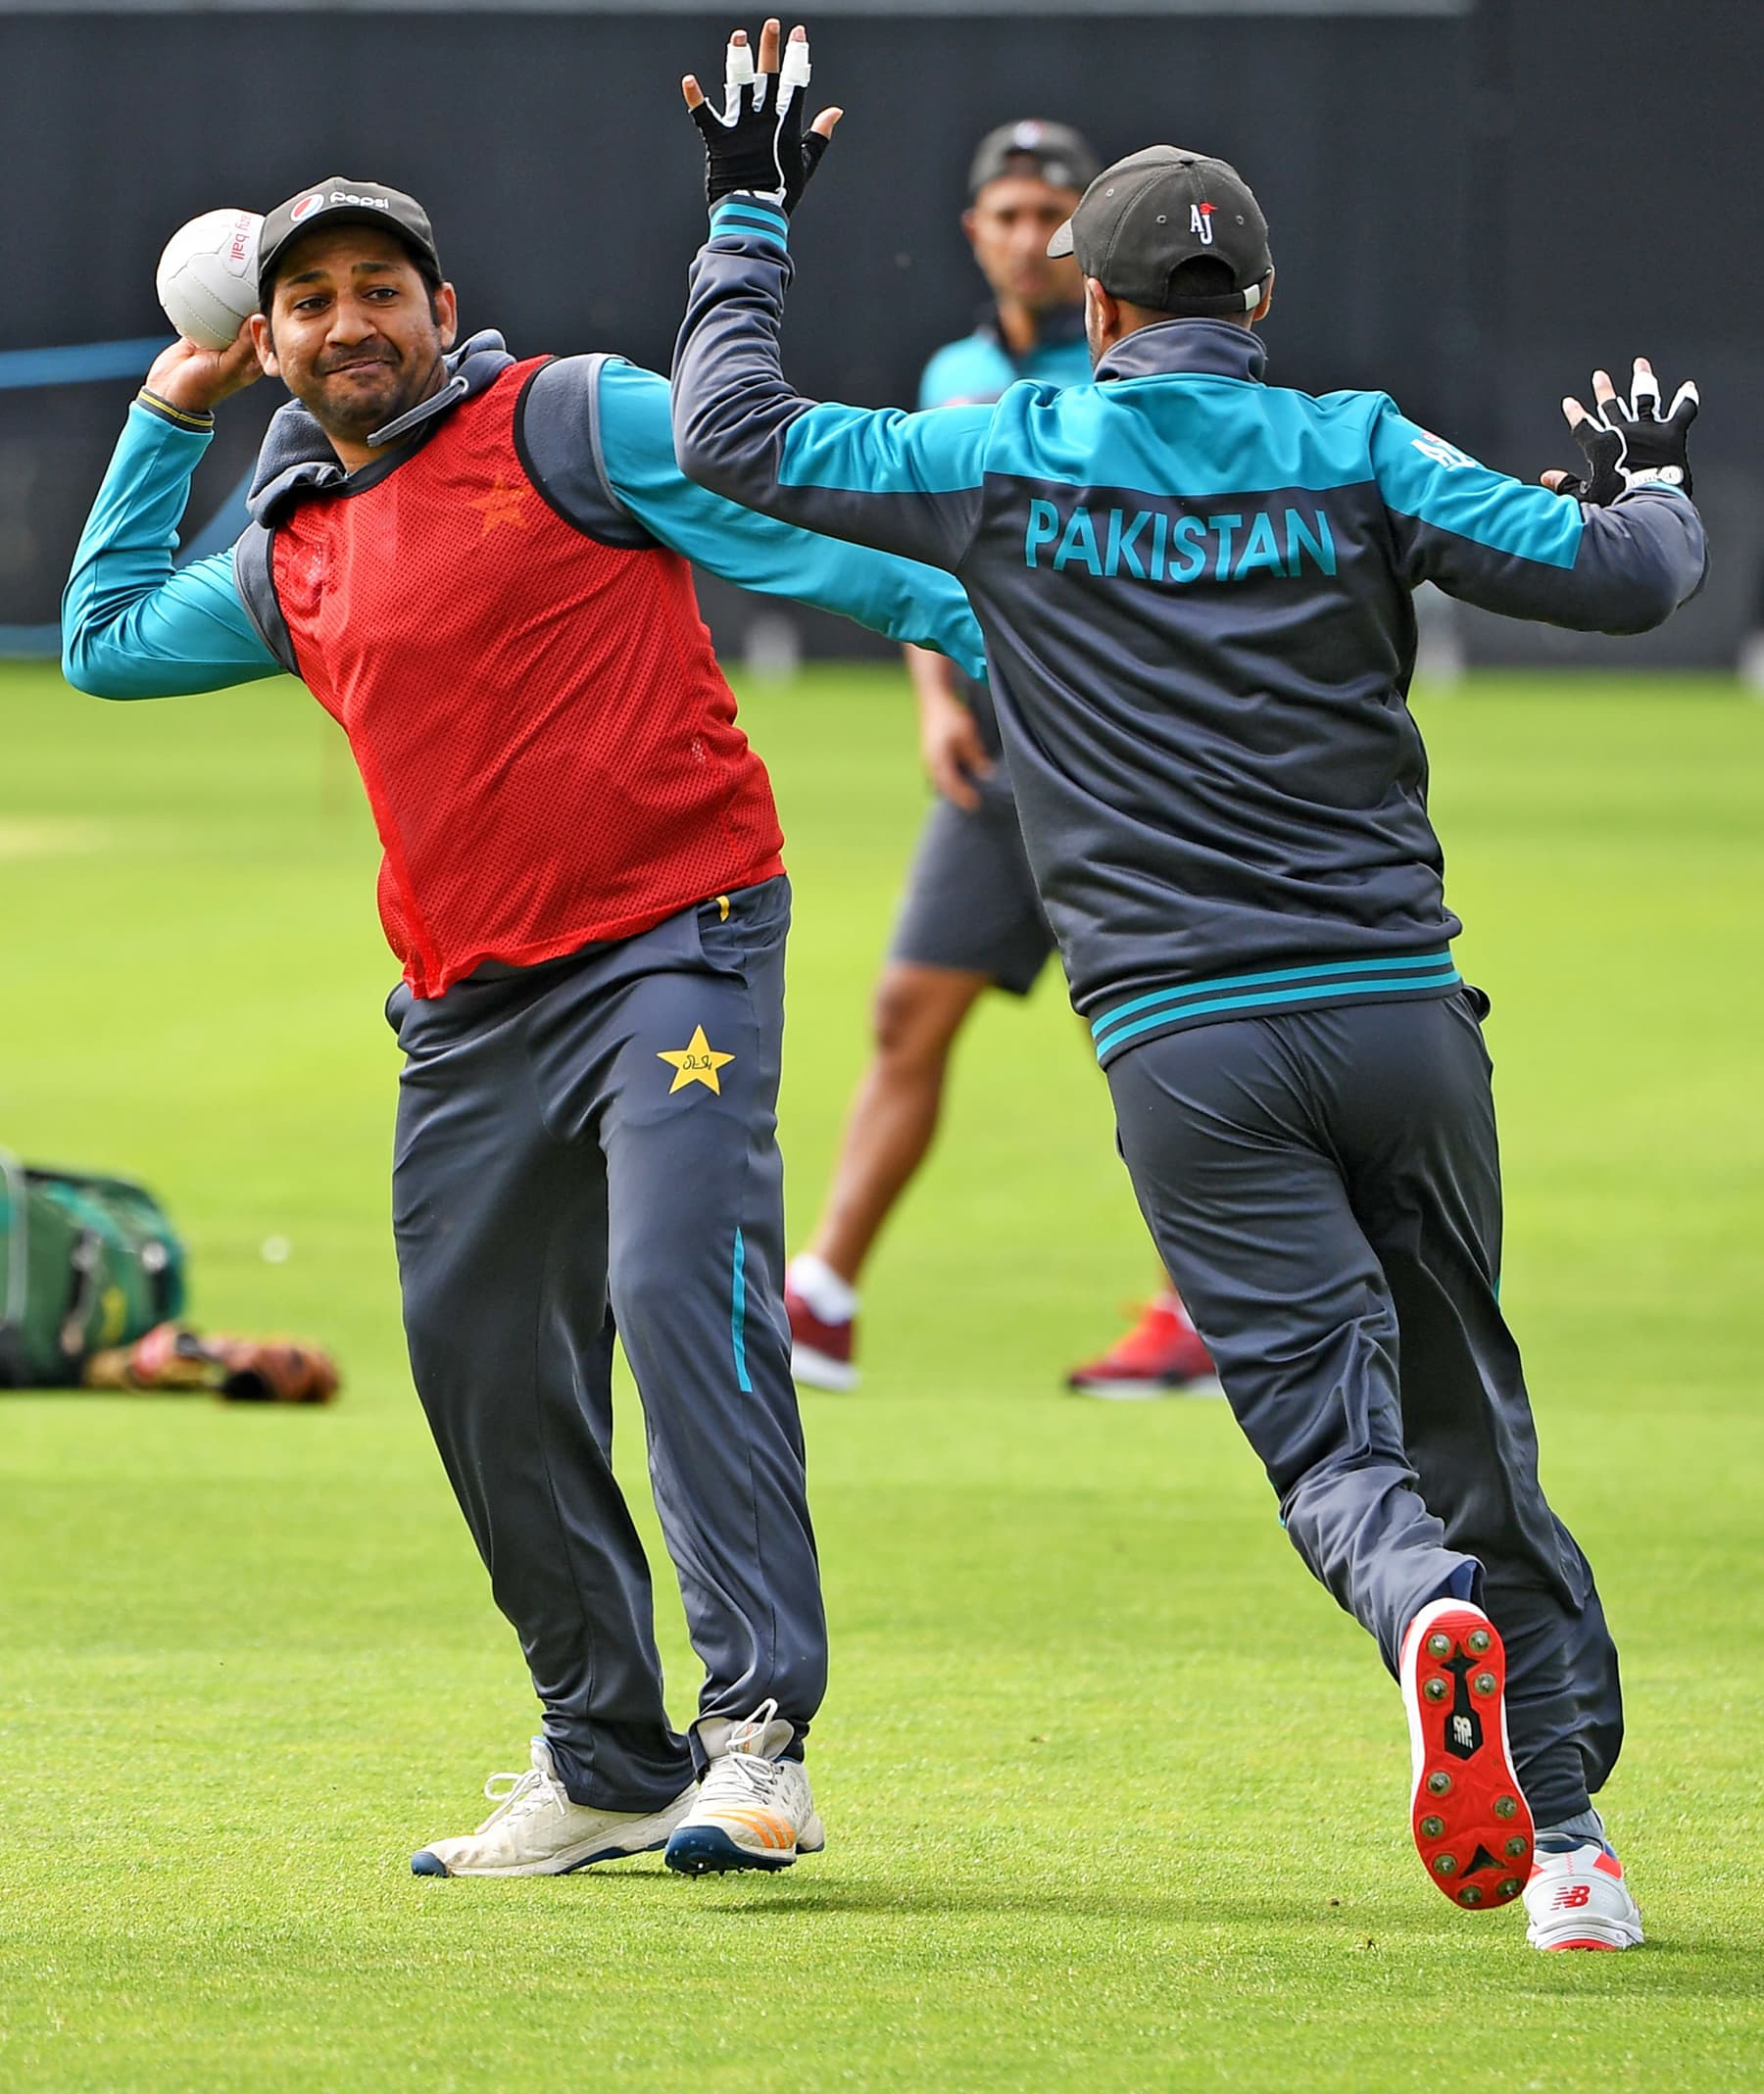 Sarfaraz moves back to throw the ball during the team training session at Headingly. — AFP